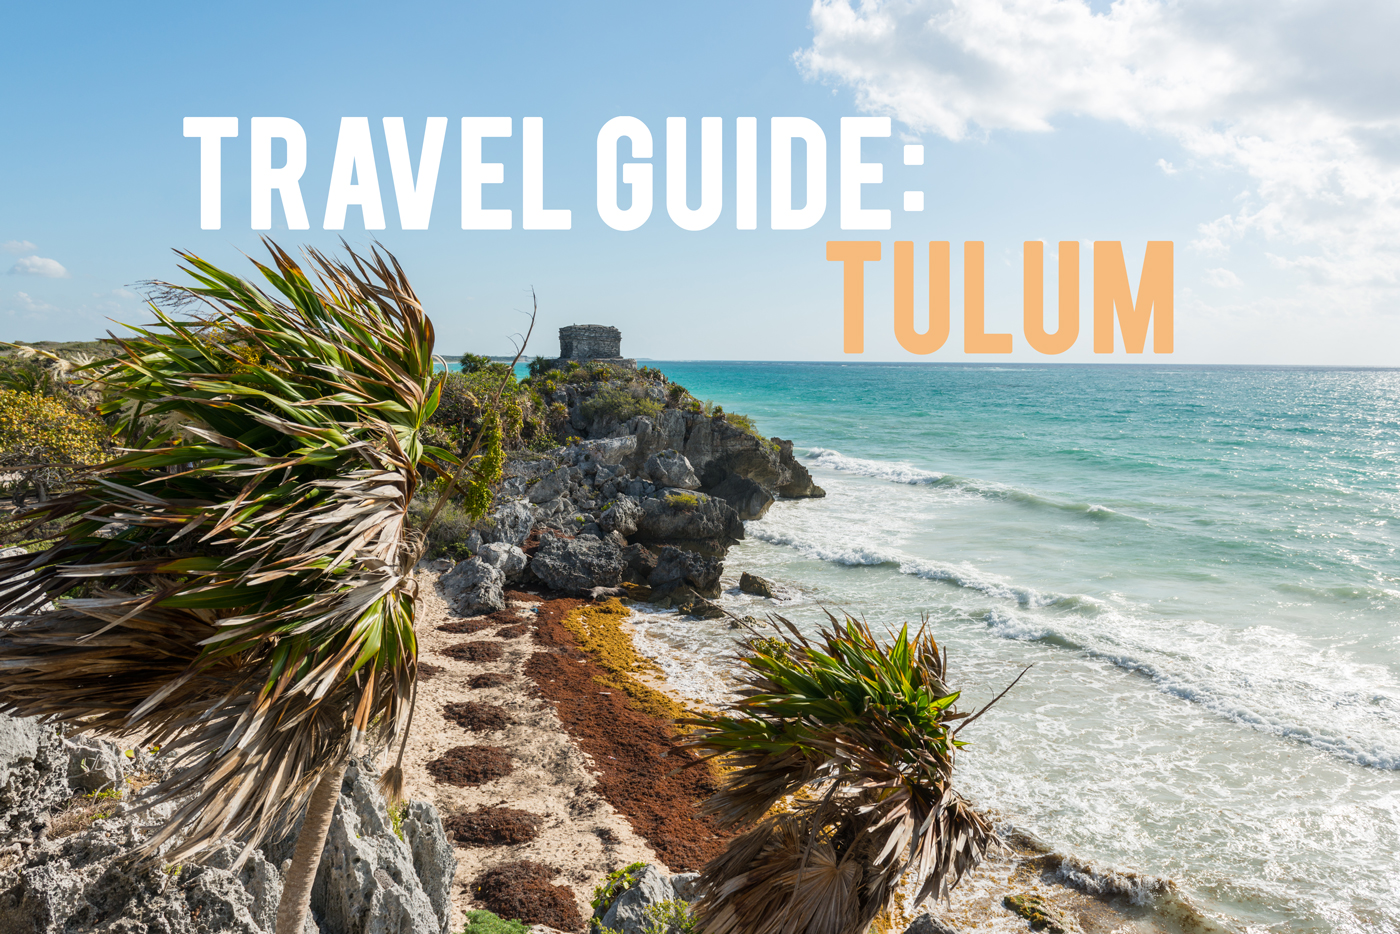 tulum travel guide